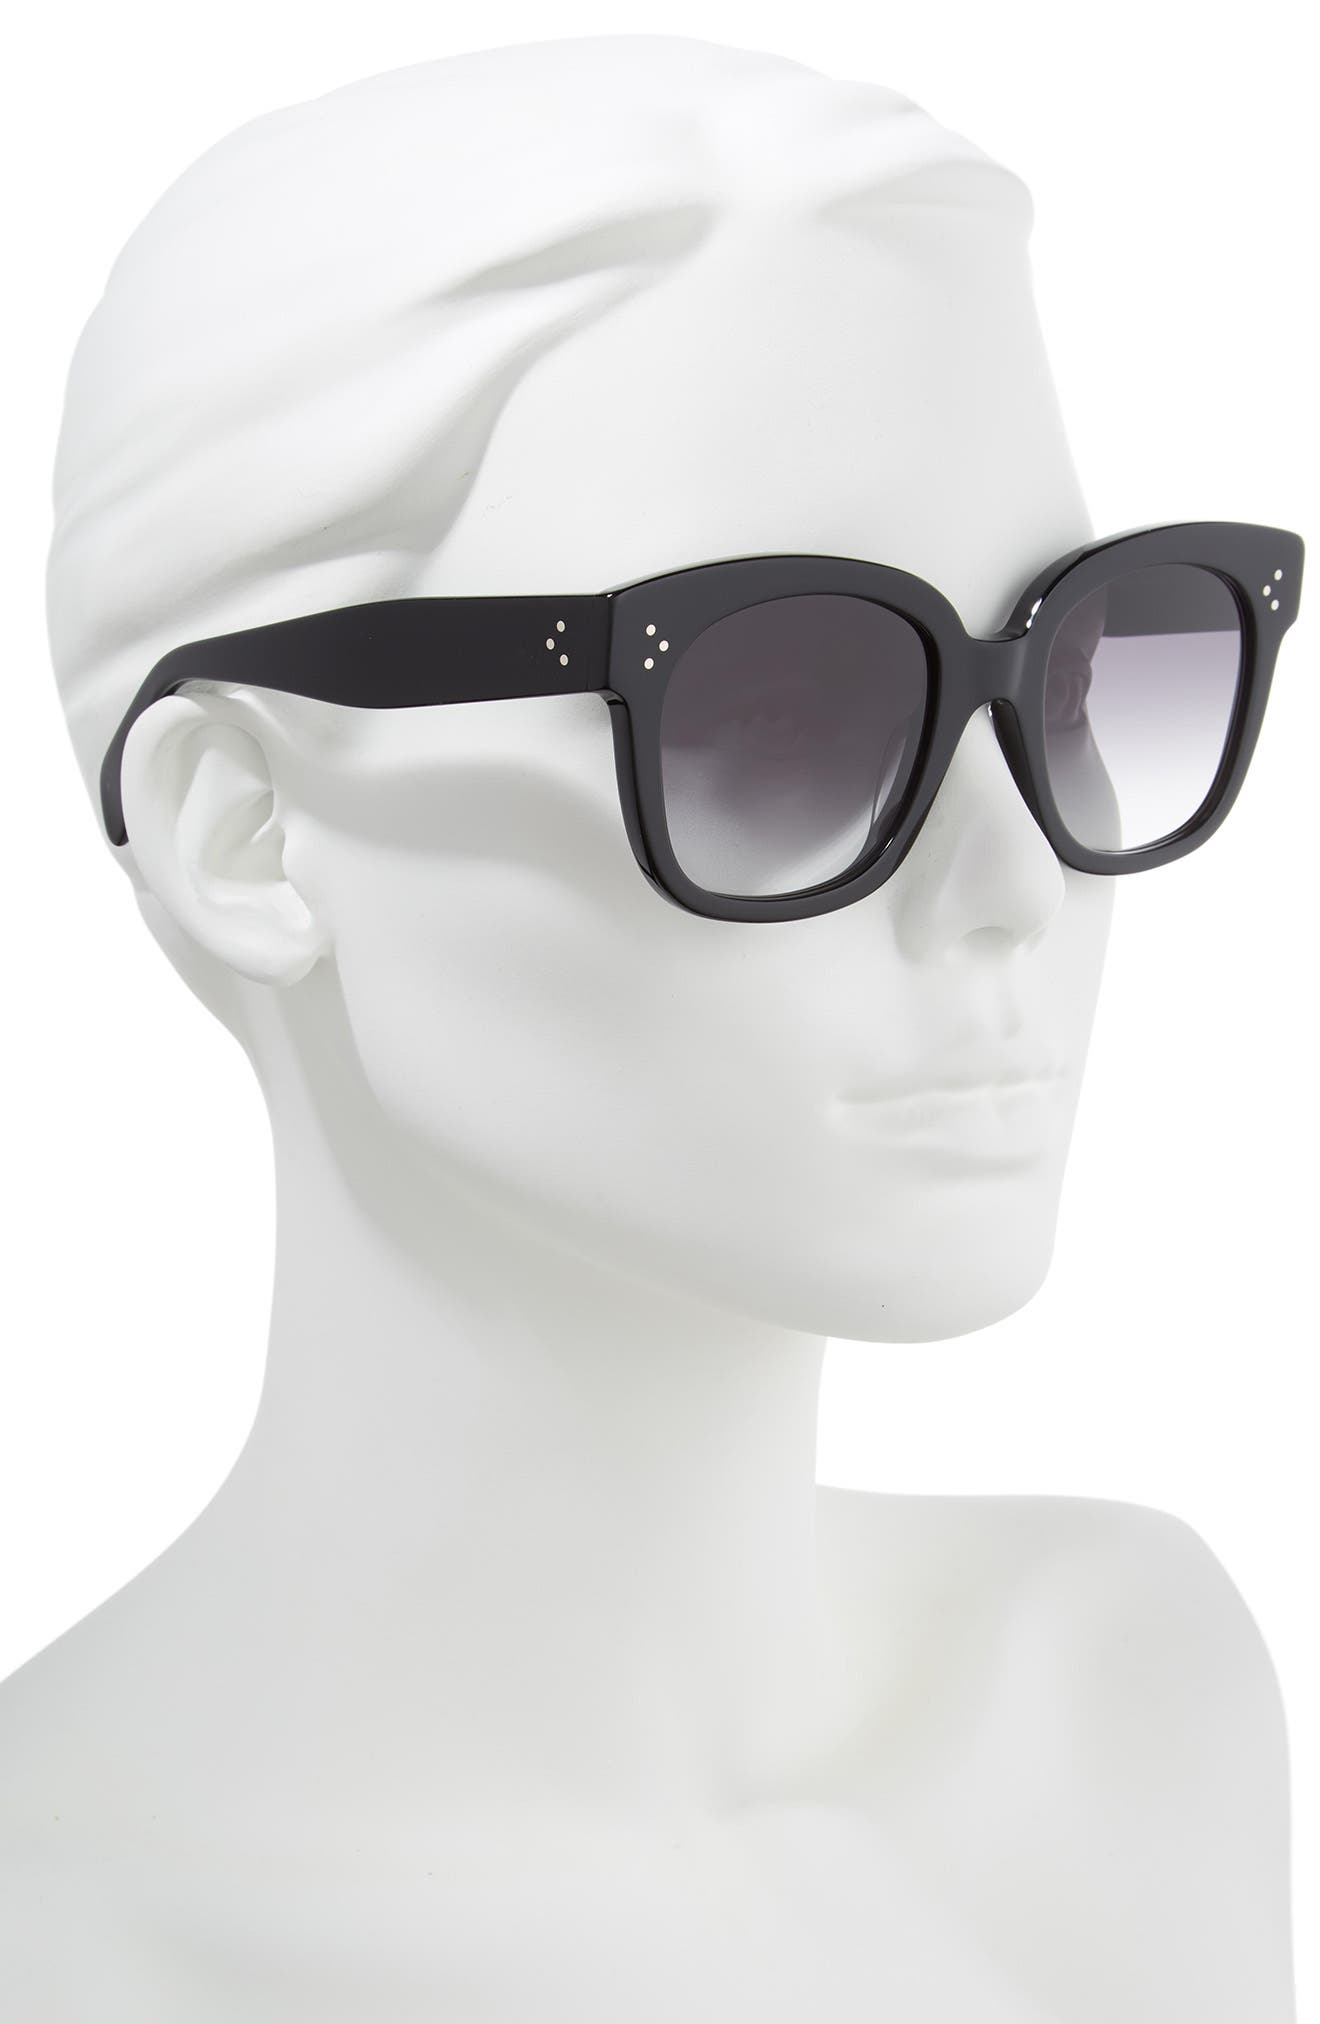 54mm Square Sunglasses,                             Alternate thumbnail 3, color,                             BLACK/ SMOKE